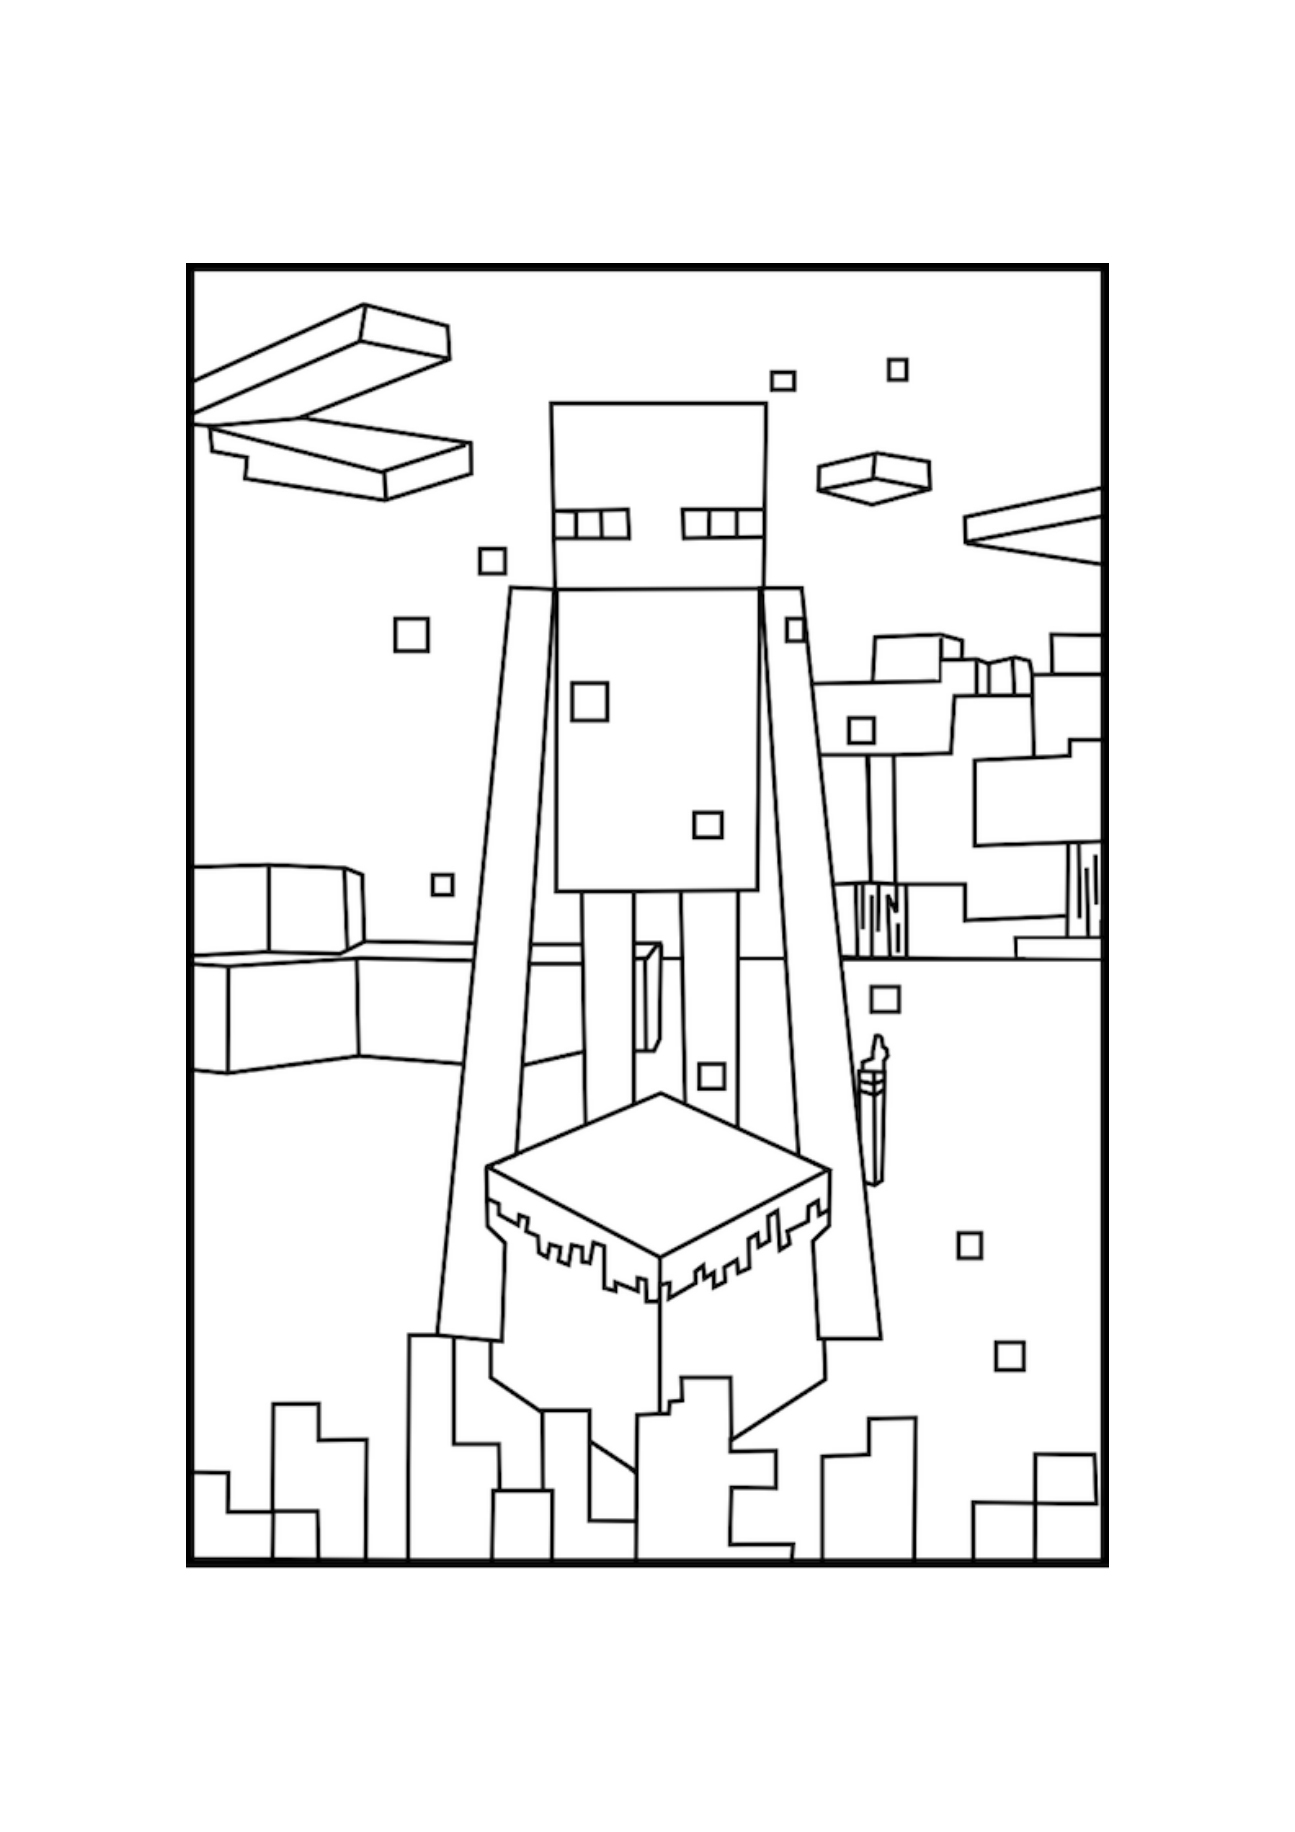 minecraft nether coloring pages minecraft rail minecraft coloring pages for children nether minecraft coloring pages